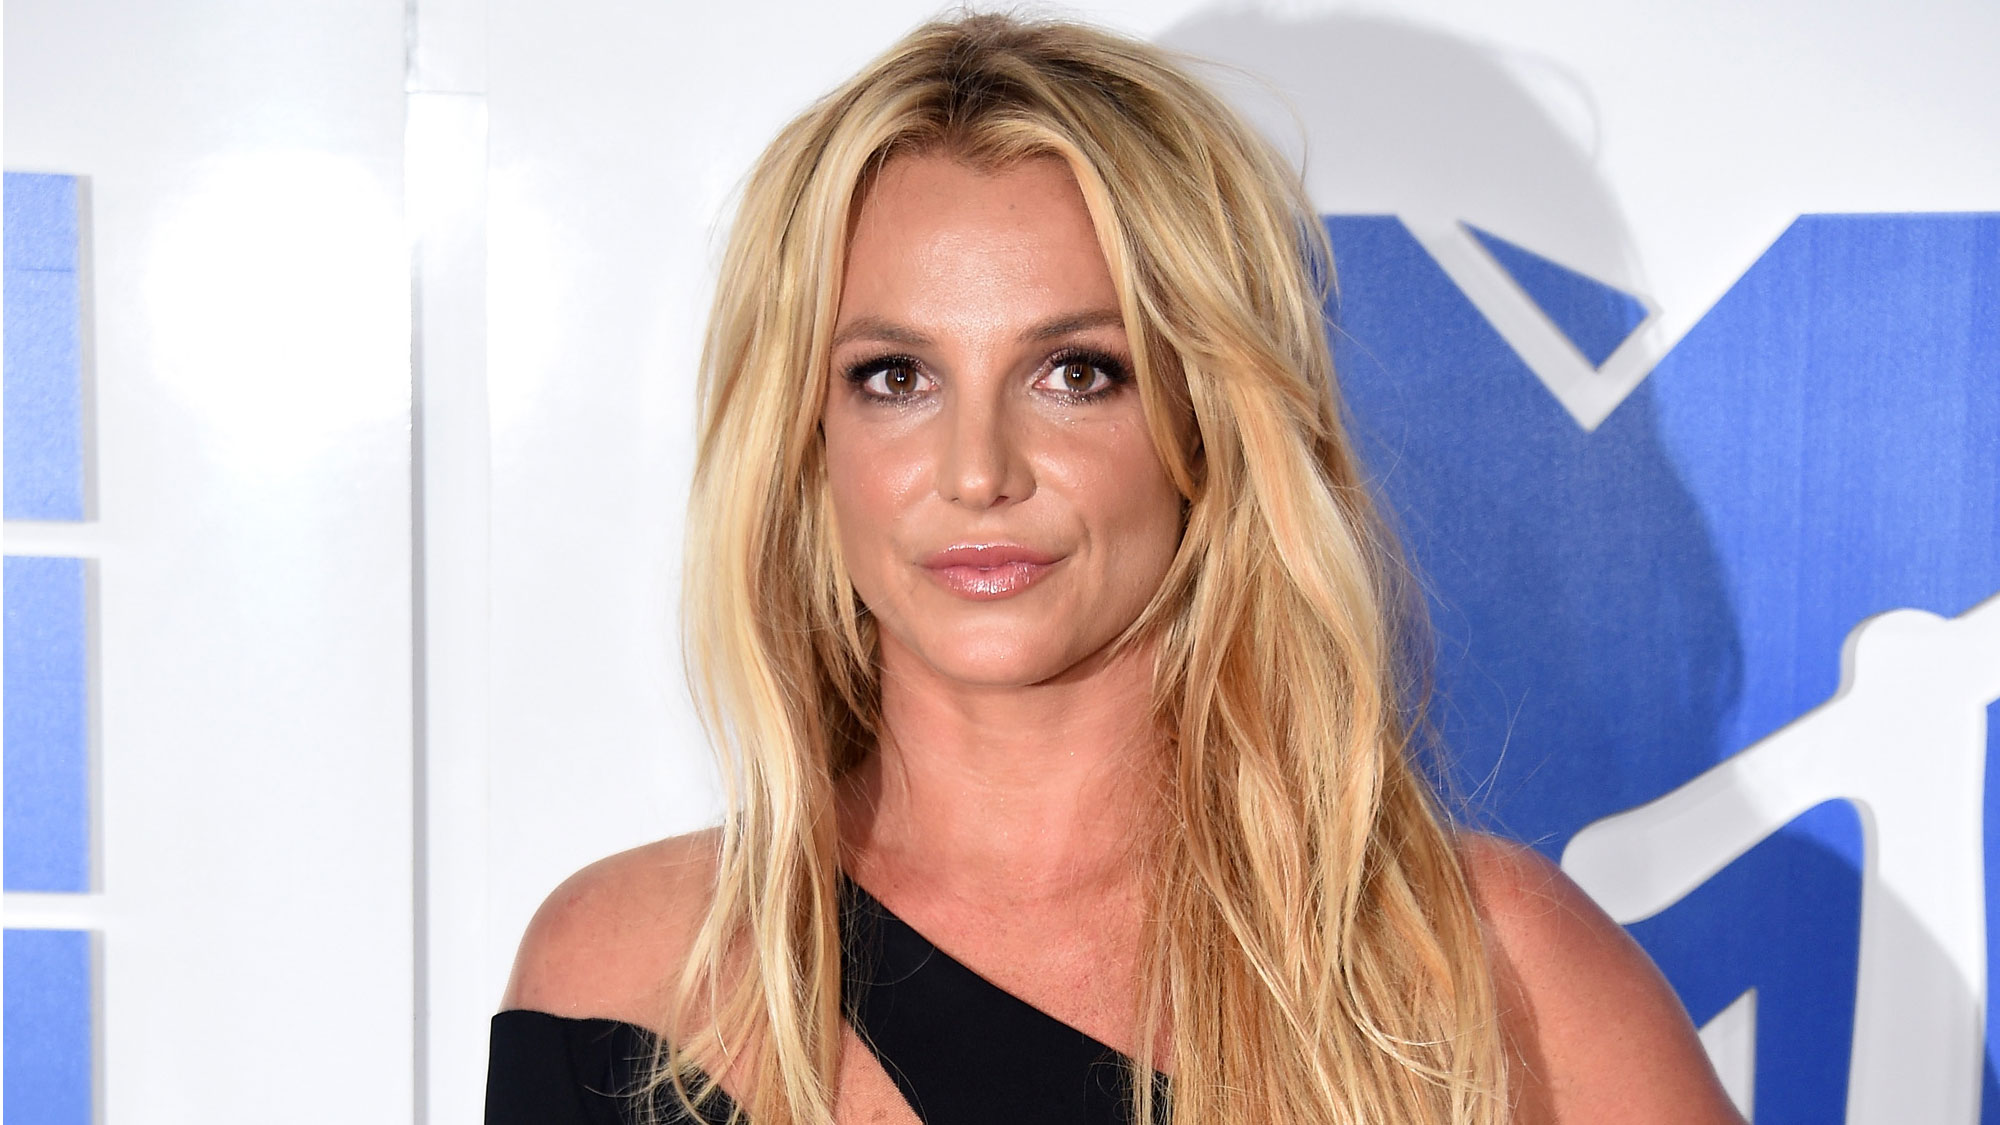 Britney Spears attends the MTV Video Music Awards in New York on August 28, 2016.